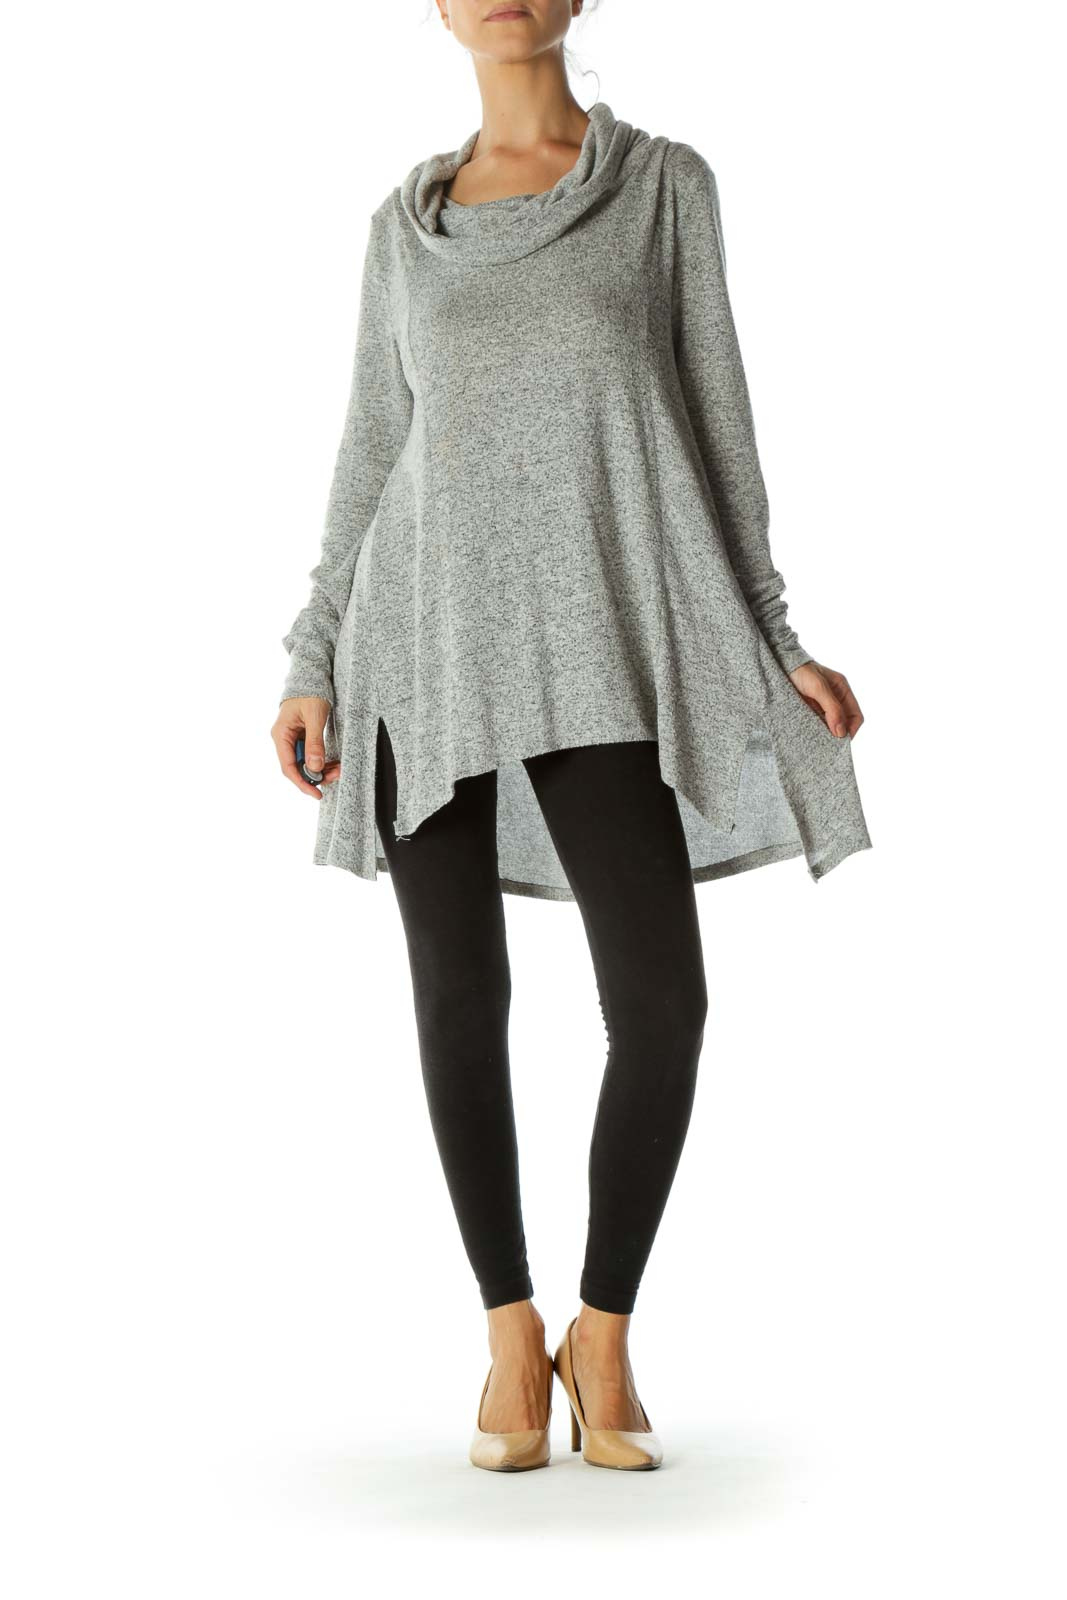 Gray Mottled Print Cowl Neck Soft Long Sleeve Sweater